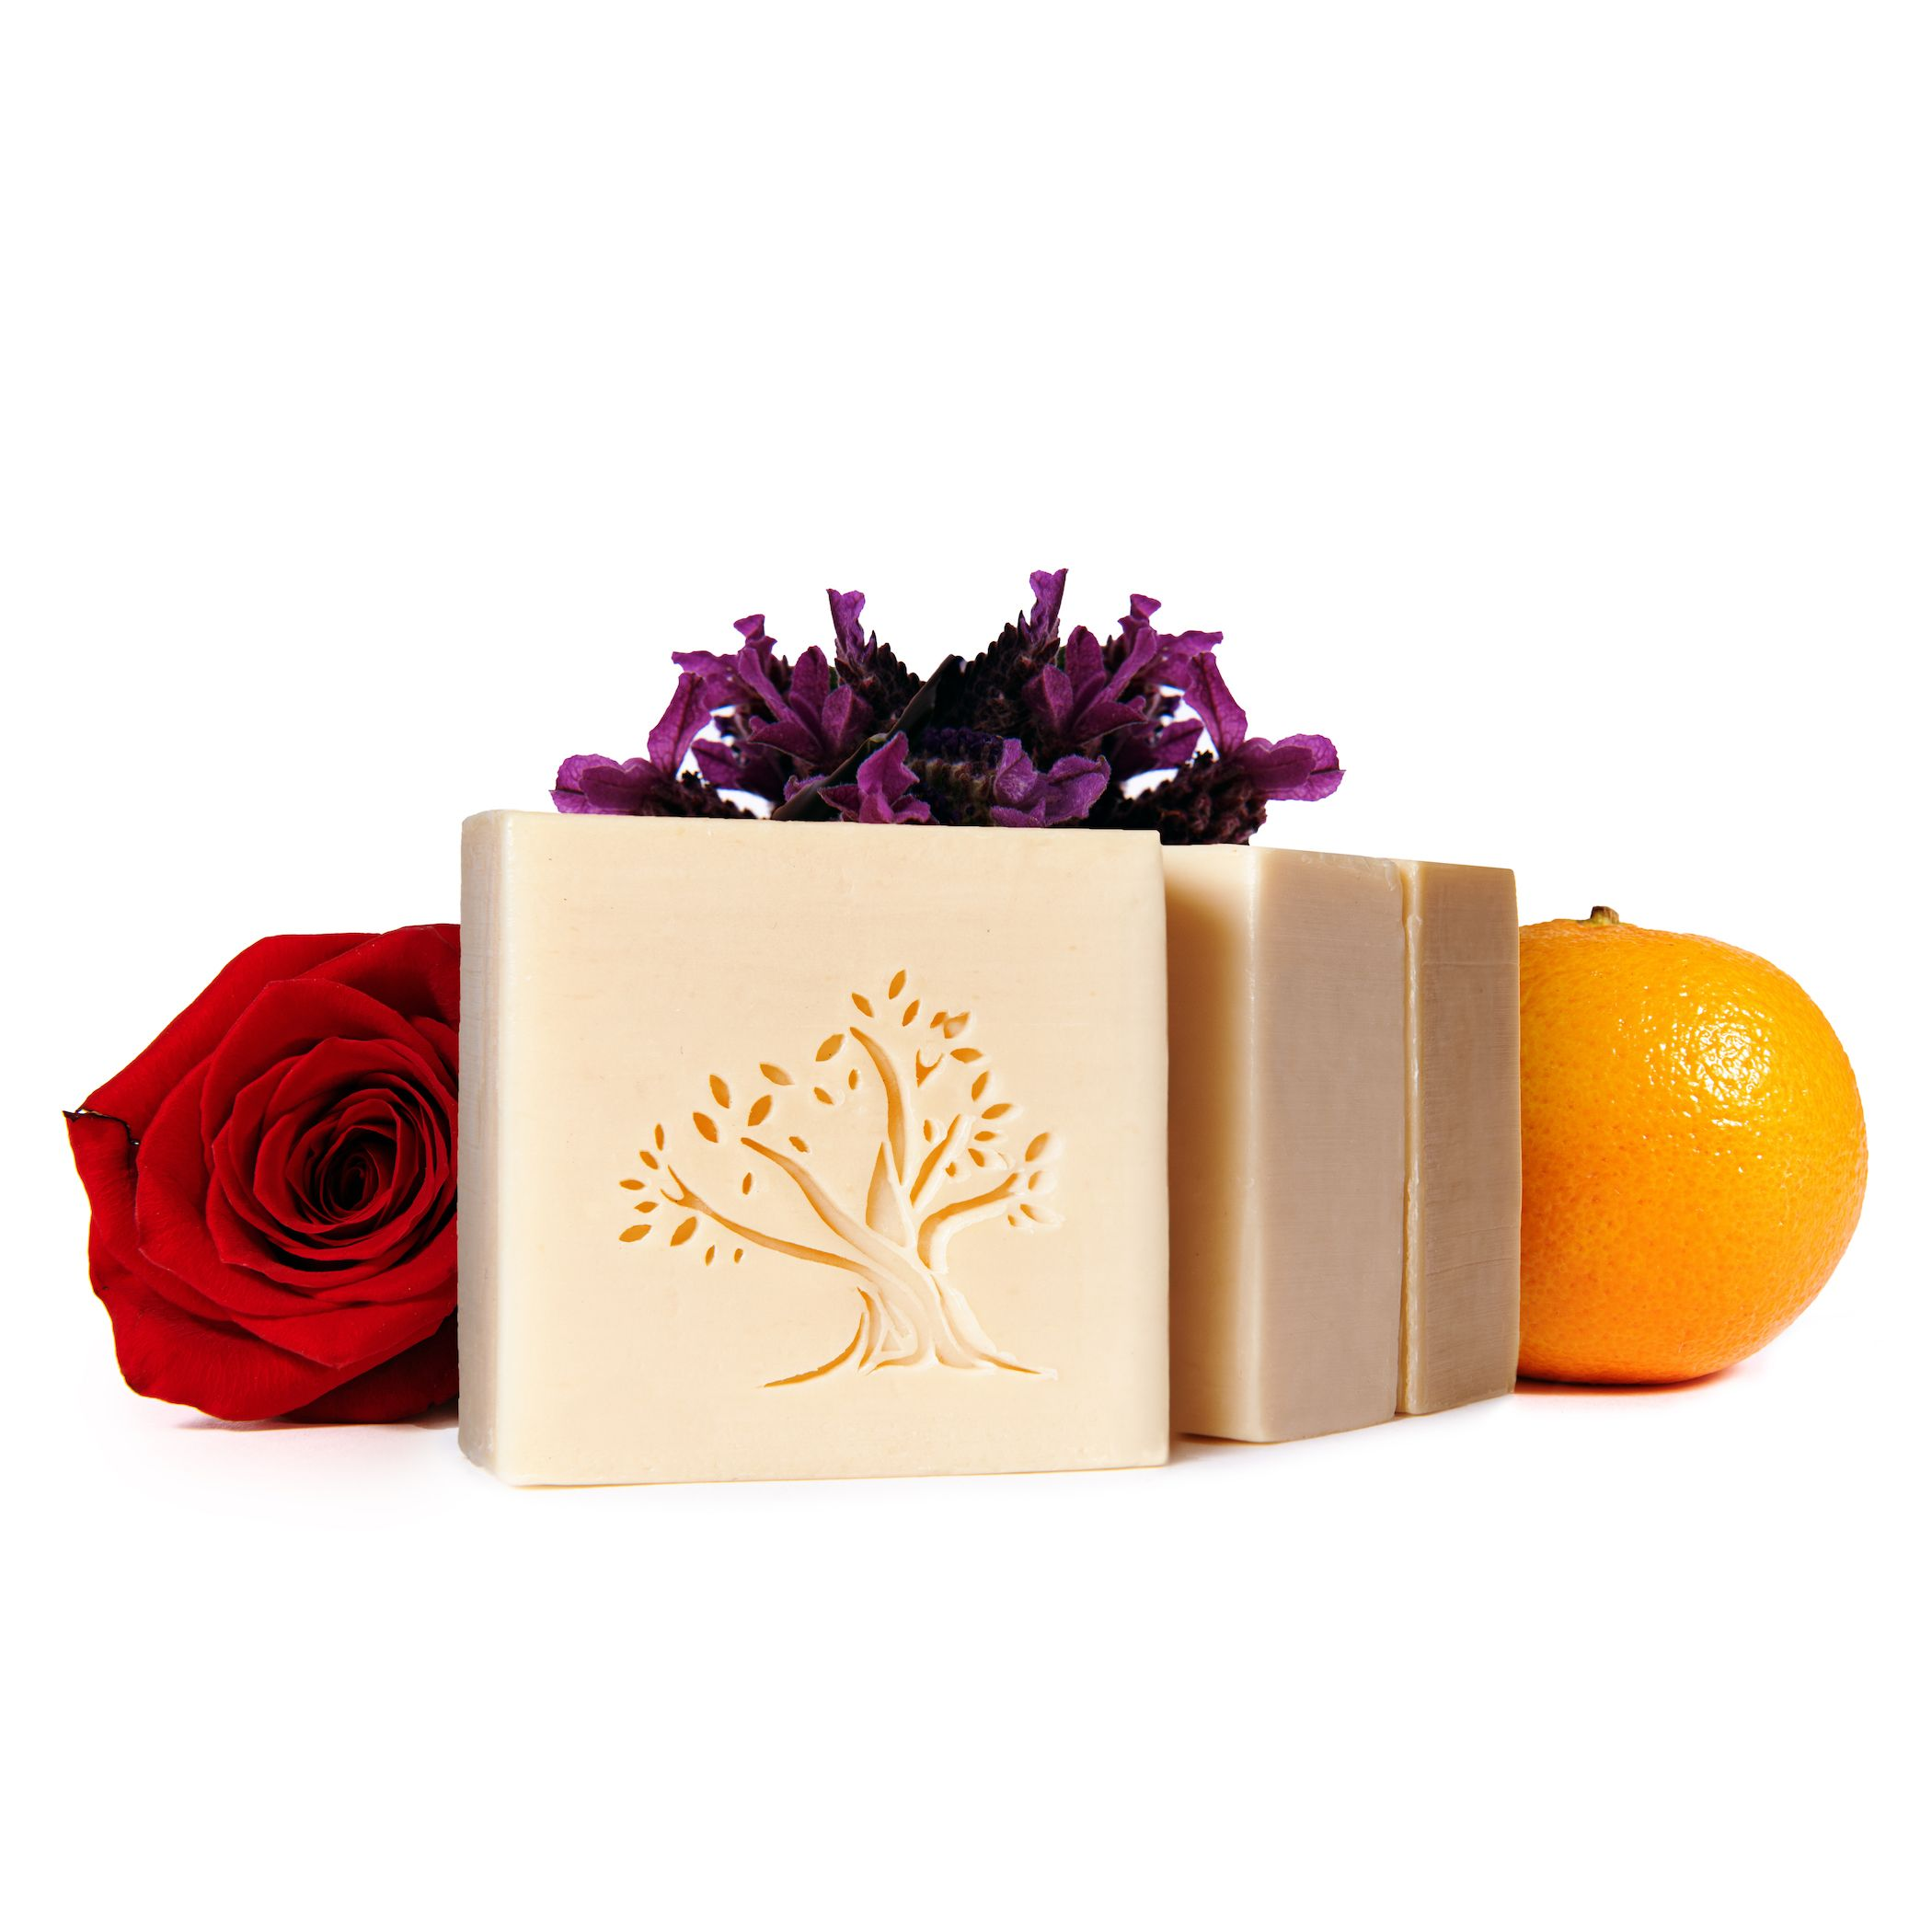 Le Joyau d'Olive Luxury Ancestral Soap, Handcrafted Artisanal Virgin Olive & Essential Oils, Gift Pack of 3 units – for Face and Body – Lavender, Rose, Orange Blossom